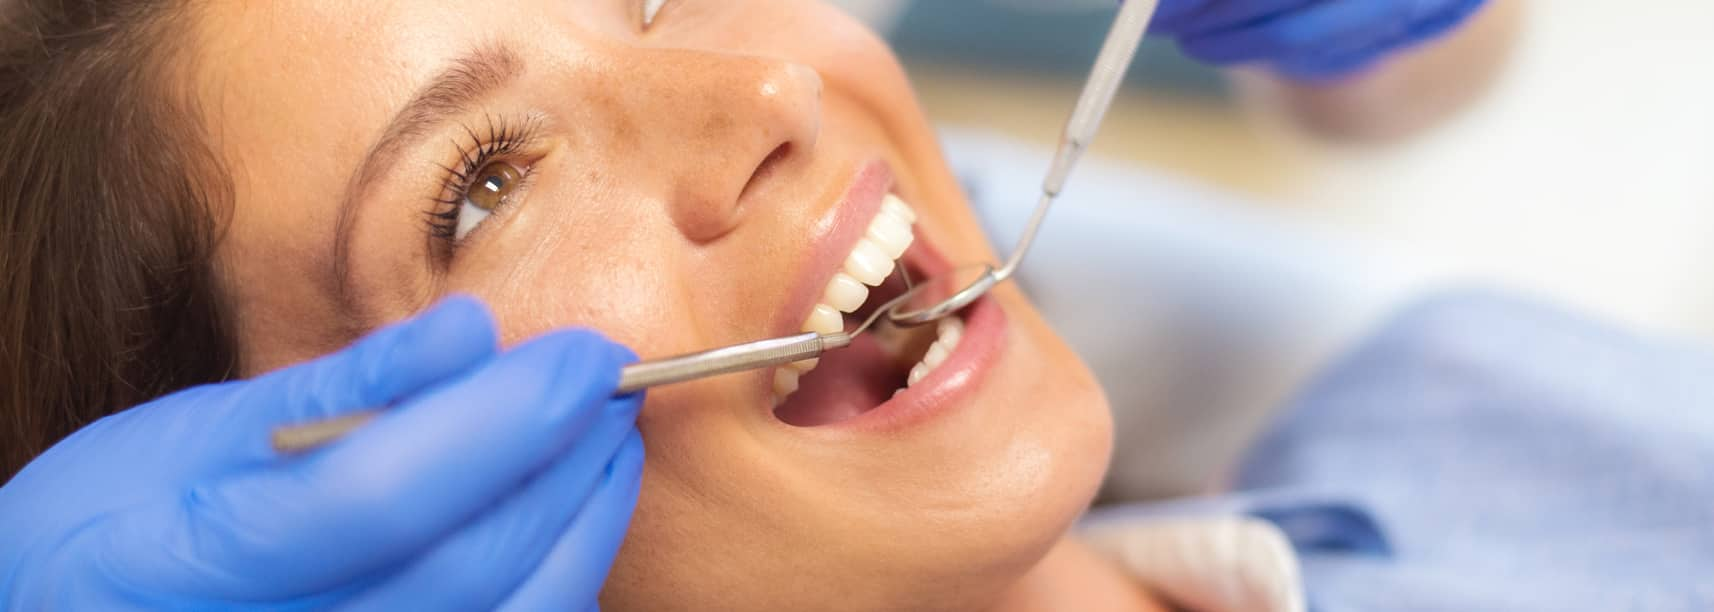 woman at the dentist getting teeth checked and fluoride treatment